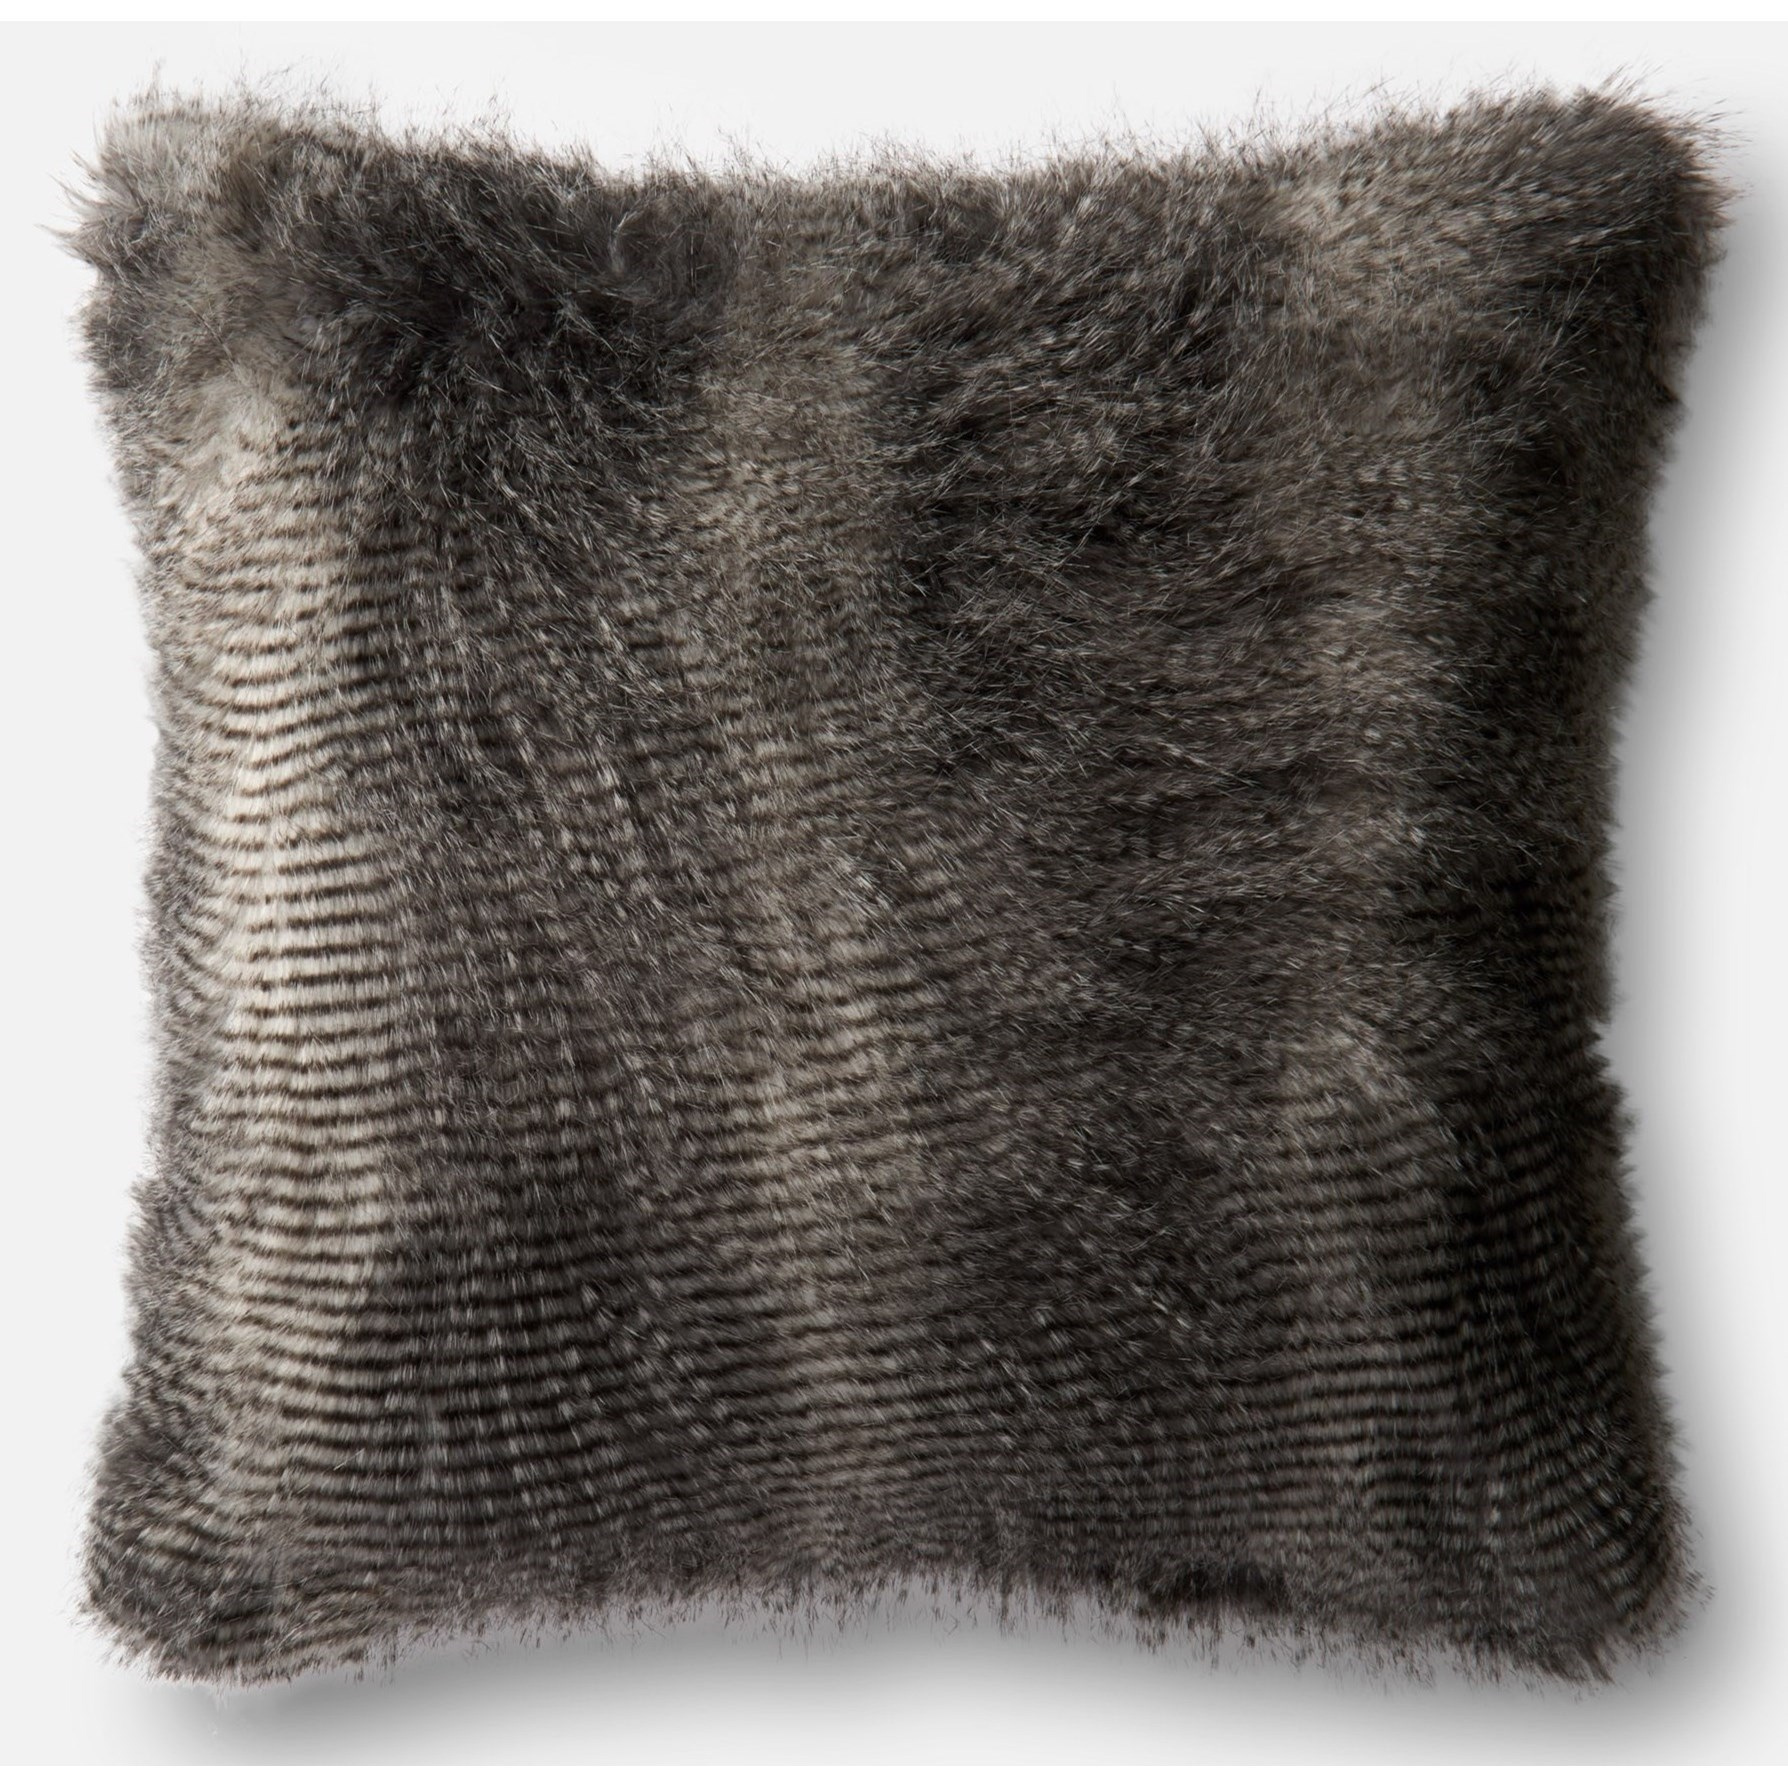 "Faux Fur 22"" X 22"" Cover w/Poly by Loloi Rugs at Sprintz Furniture"